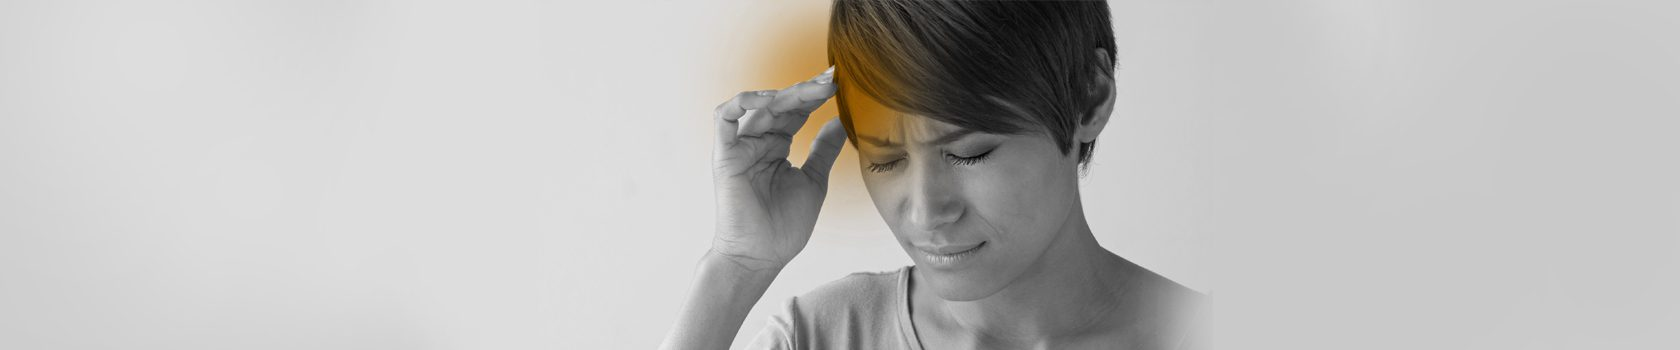 Relief from headaches using physiotherapy